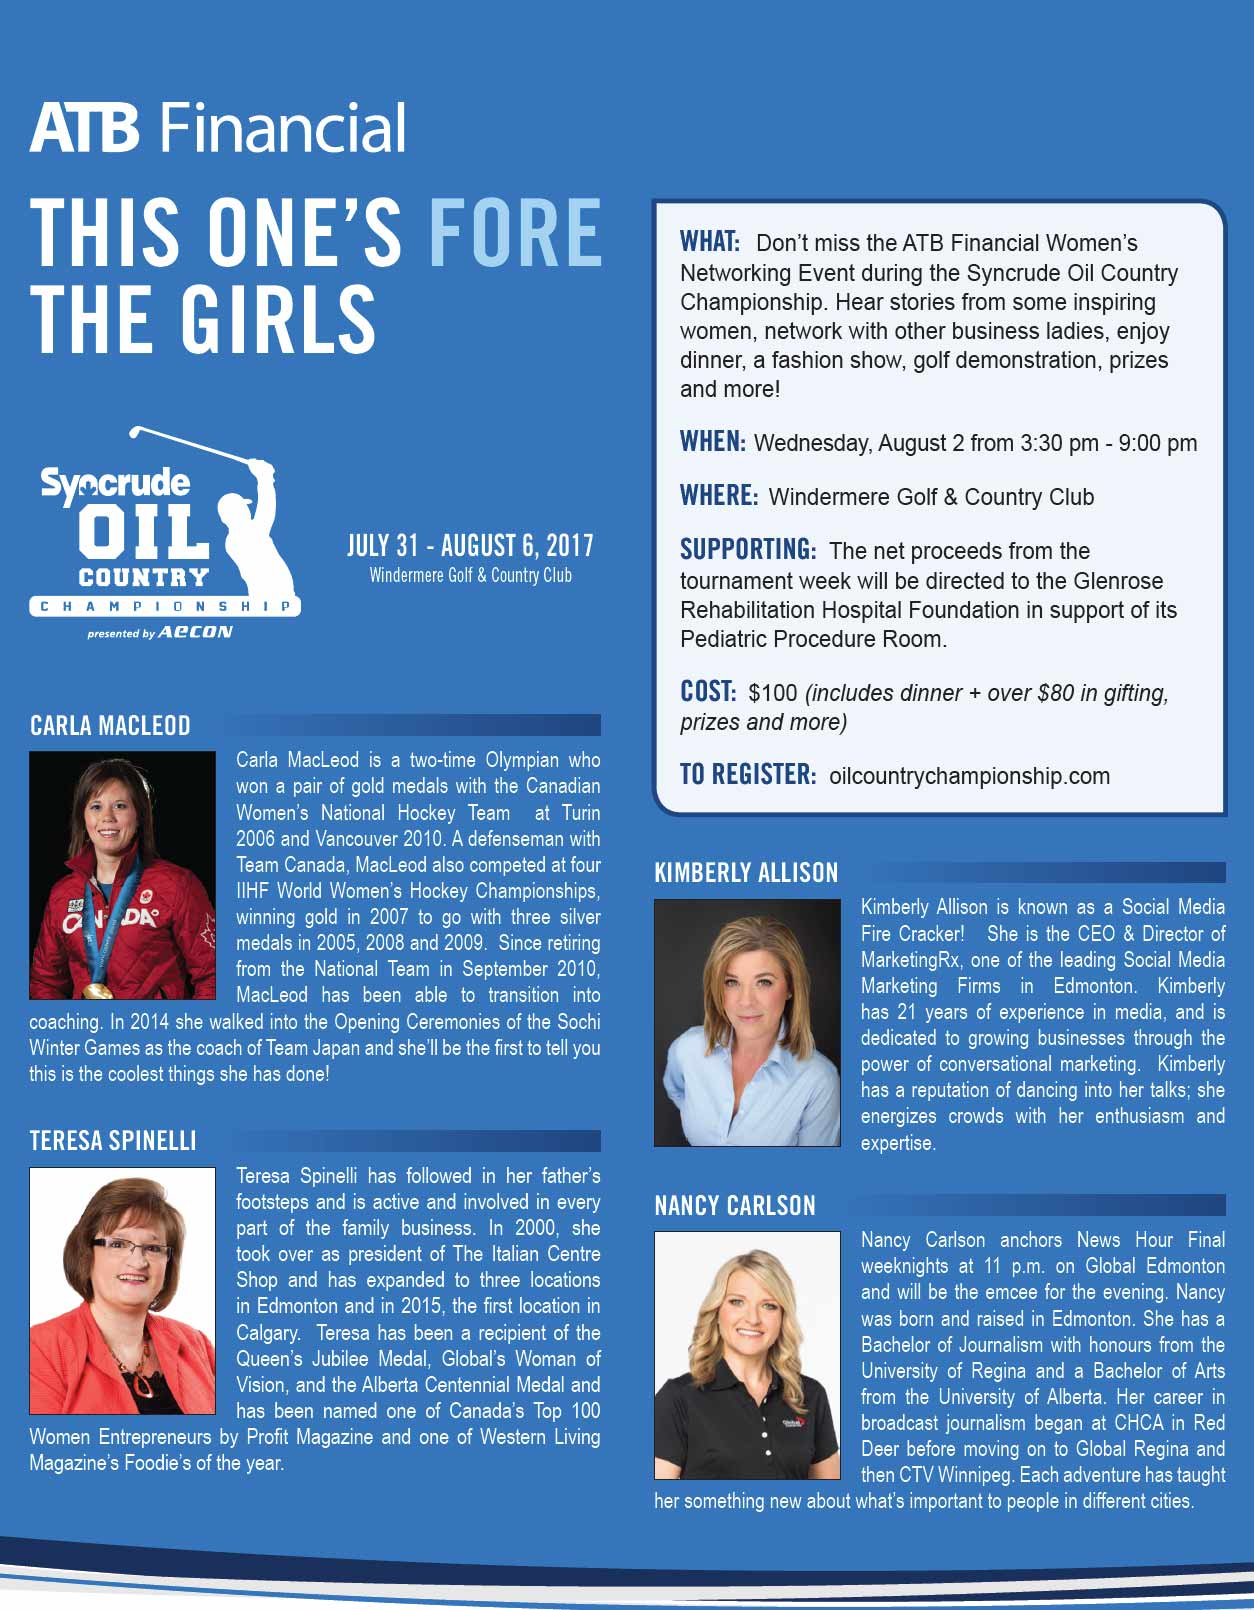 Kimberly will be speaking at this event with Carla MacLeod (two-time Olympian), Teresa Spinelli (The Italian Centre Shop president), and Nancy Carlson (Global News Anchor)